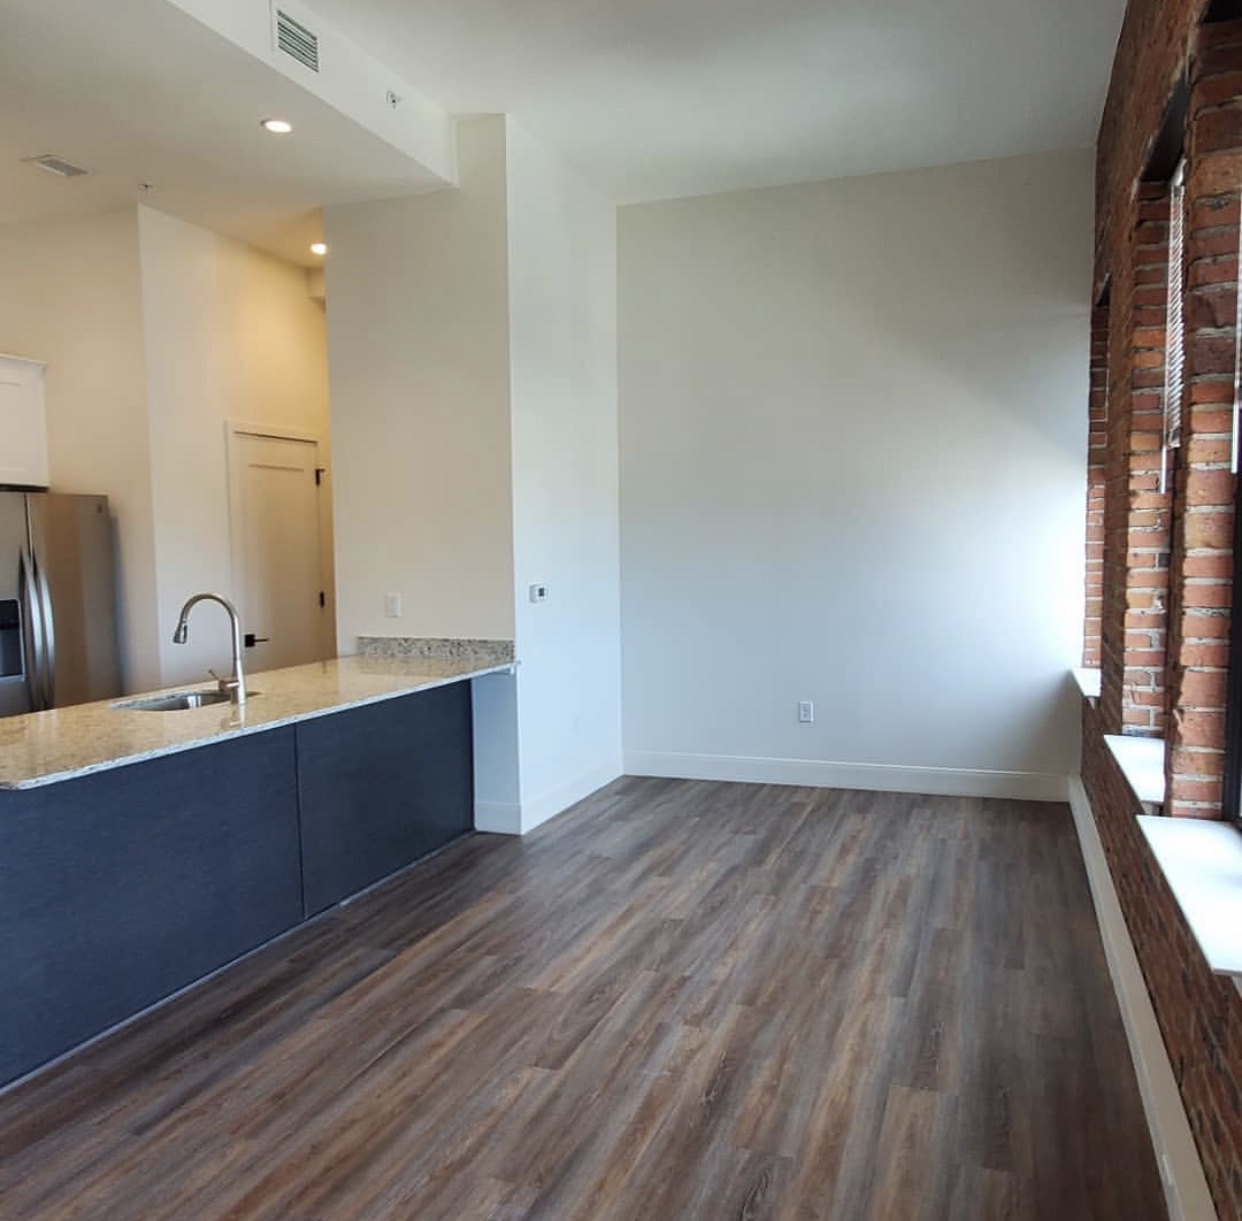 Apartment with counter